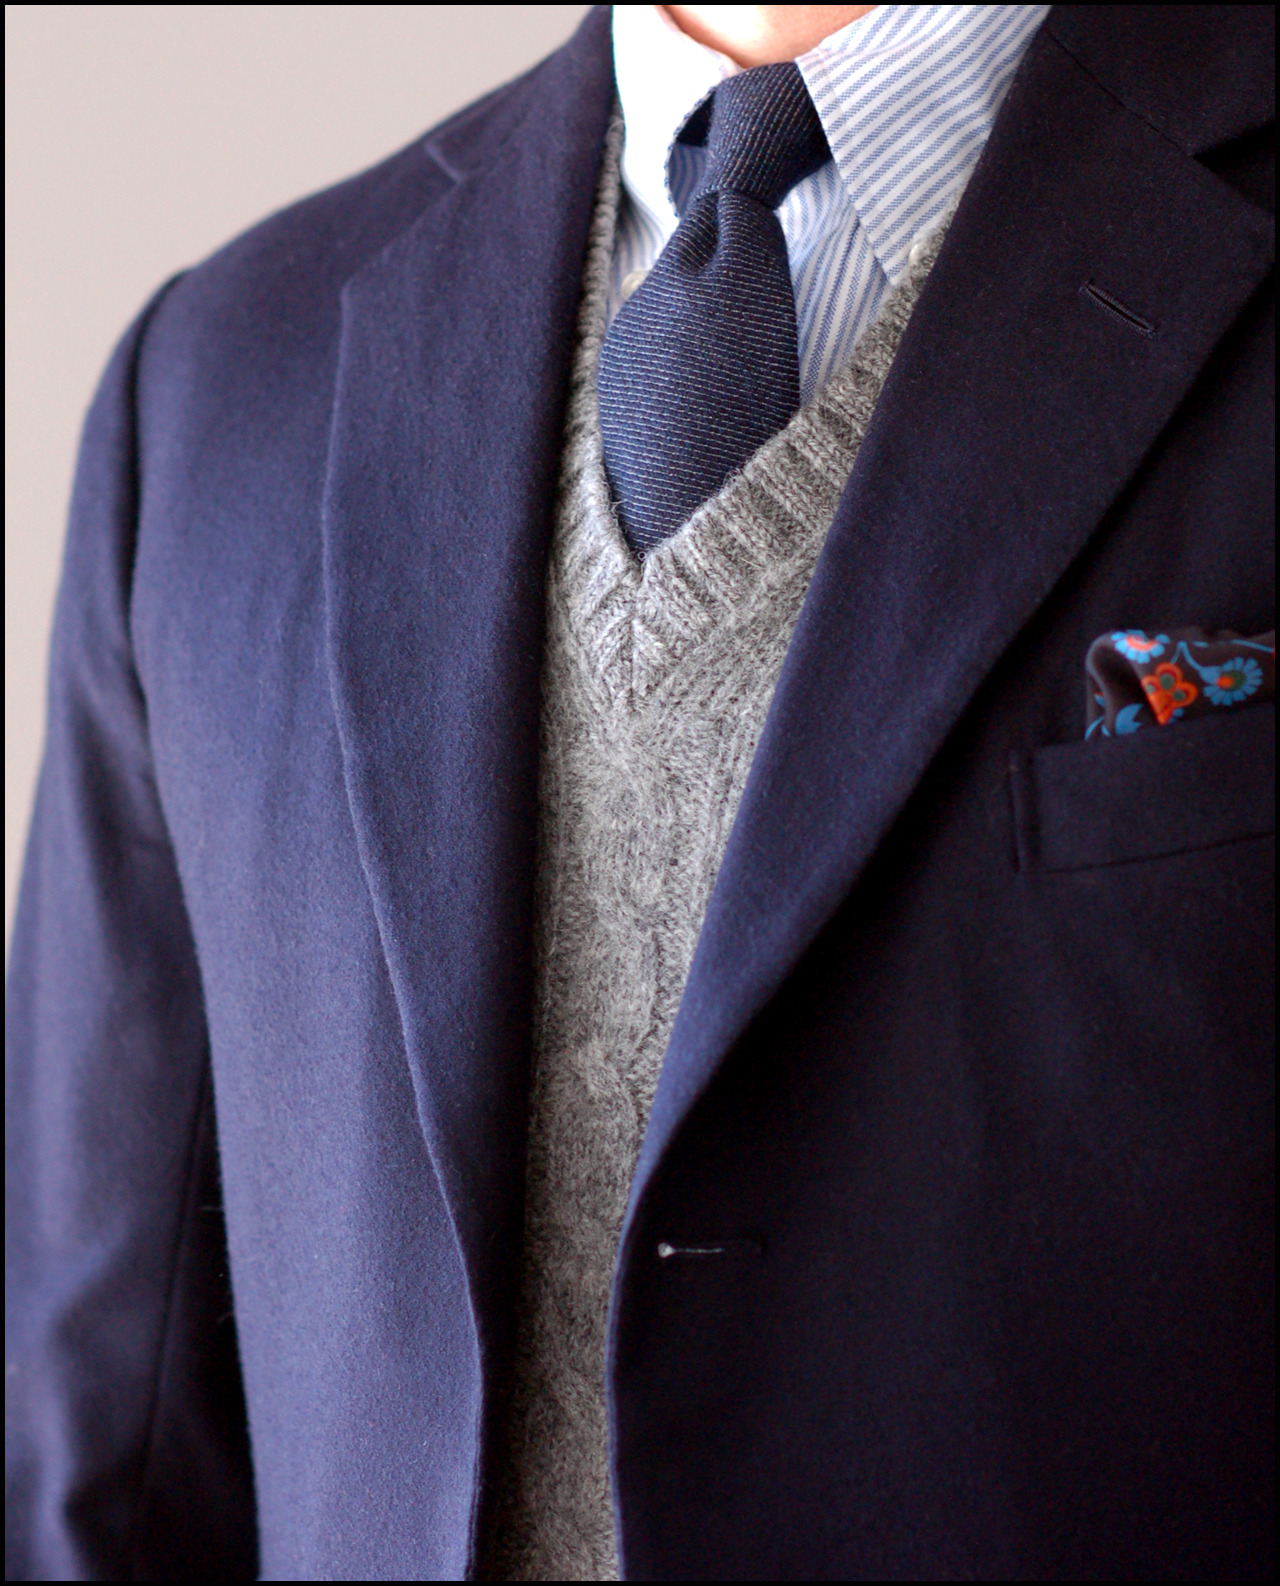 A Chilly Winter Saturday Rig. Steed (Edwin DeBoise) bespoke navy odd jacket in a thick, meaty, plush Fox woolen flannel; Mercer polo collar shirt; E. & G. Cappelli cashmere tie; ye olde McGeorge Shetland vest; Holland & Holland square.